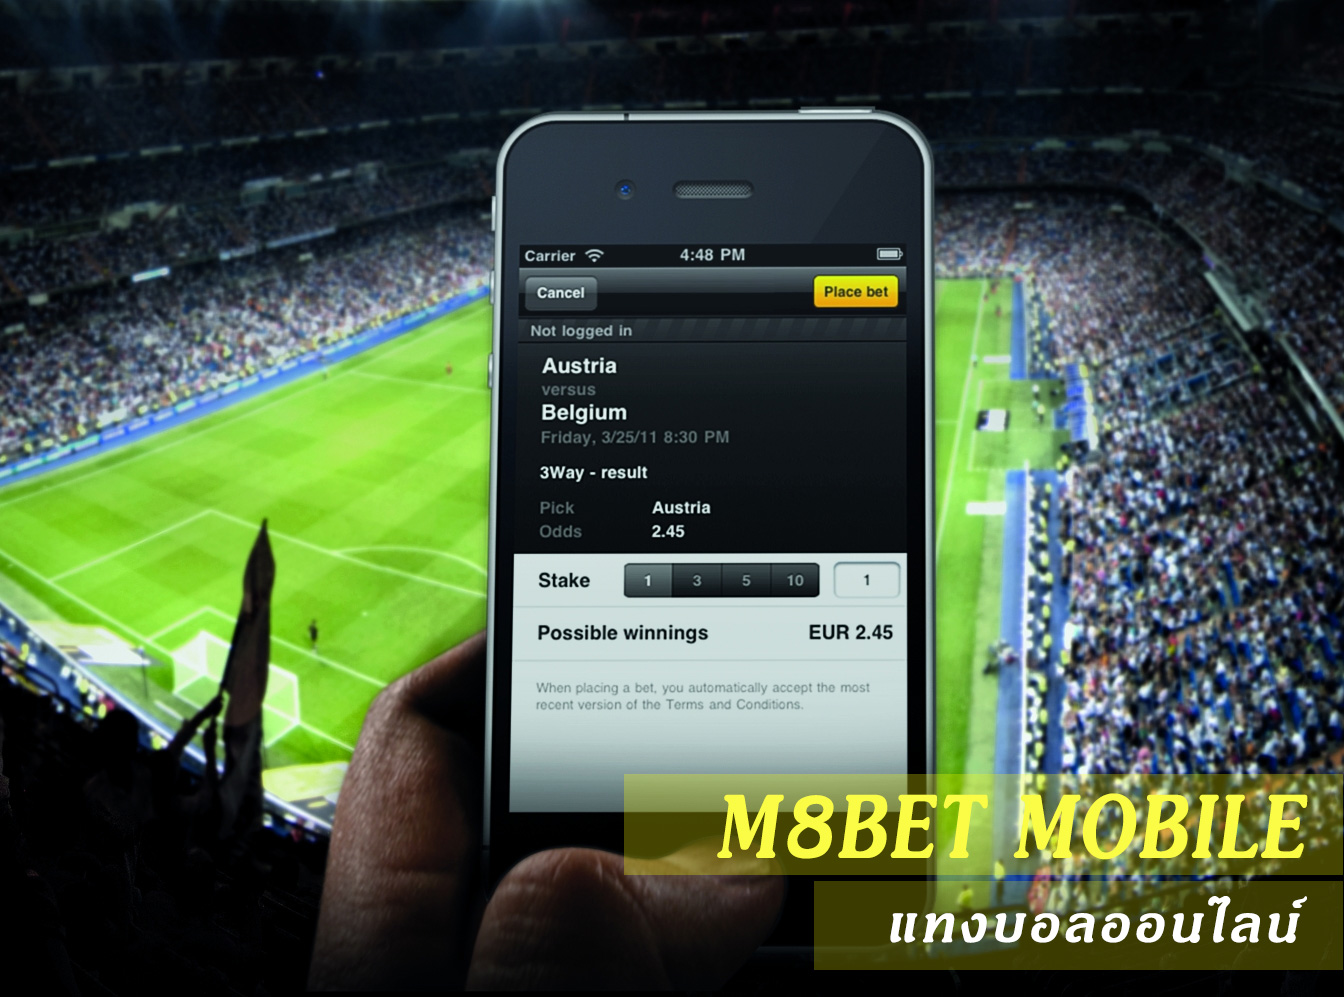 m8bet-mobile